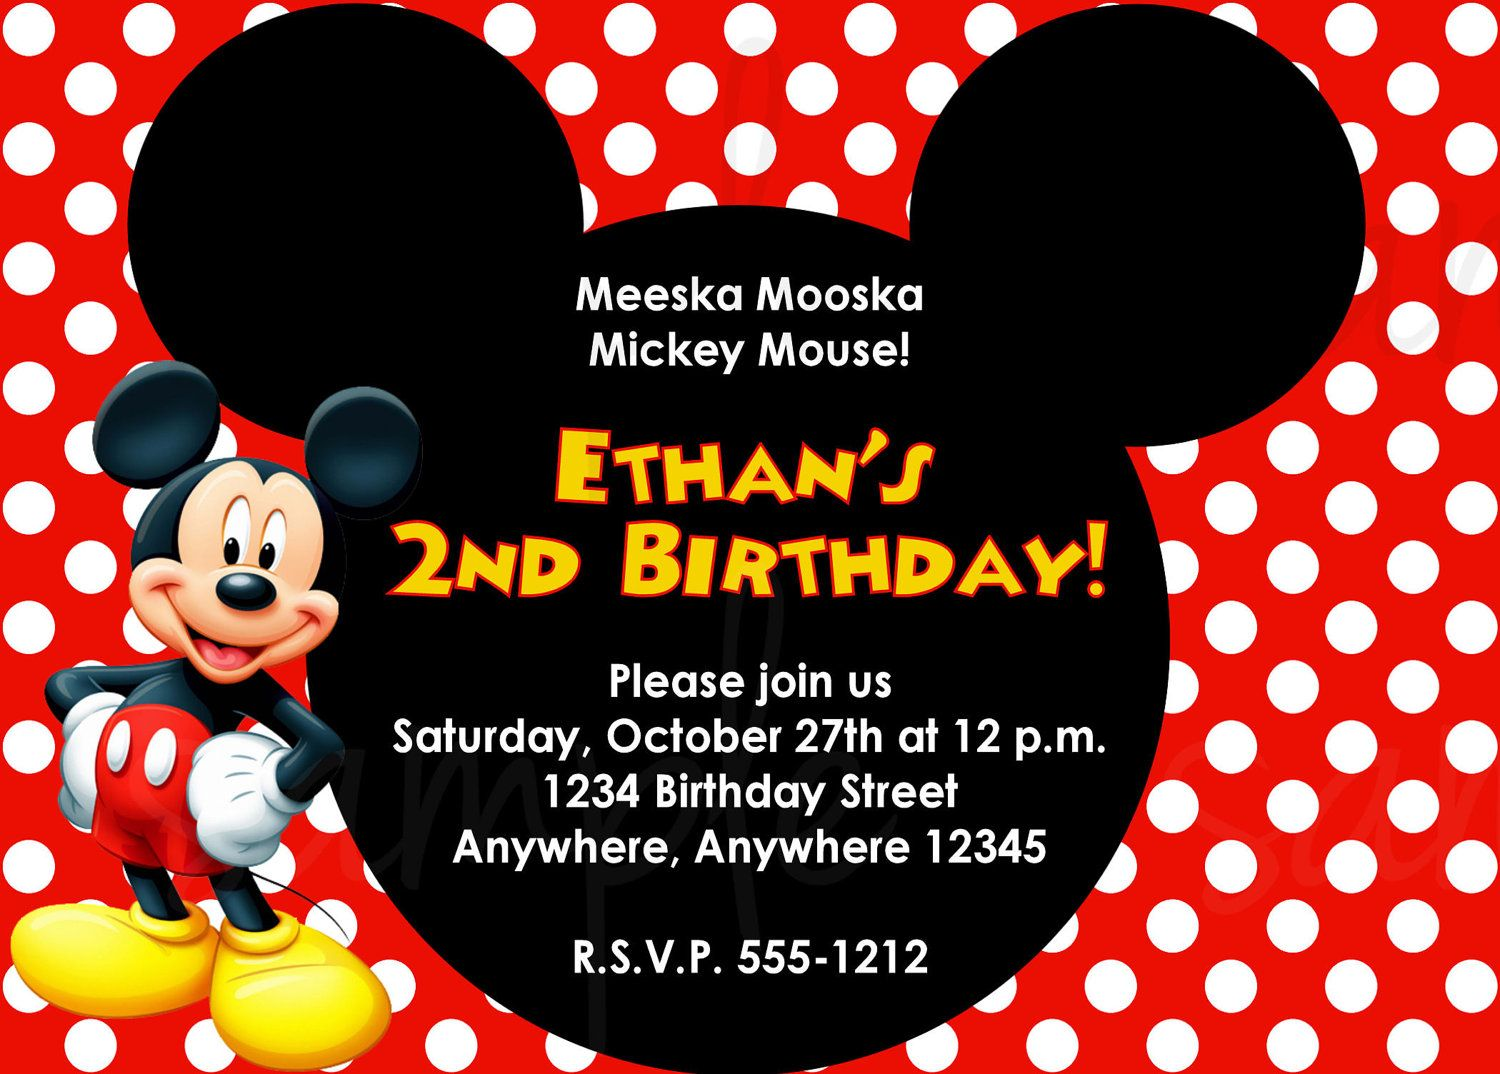 Mickey Mouse Birthday Invite Mickey Mouse Birthday Invitations Mickey Invitations Mickey Mouse Invitation